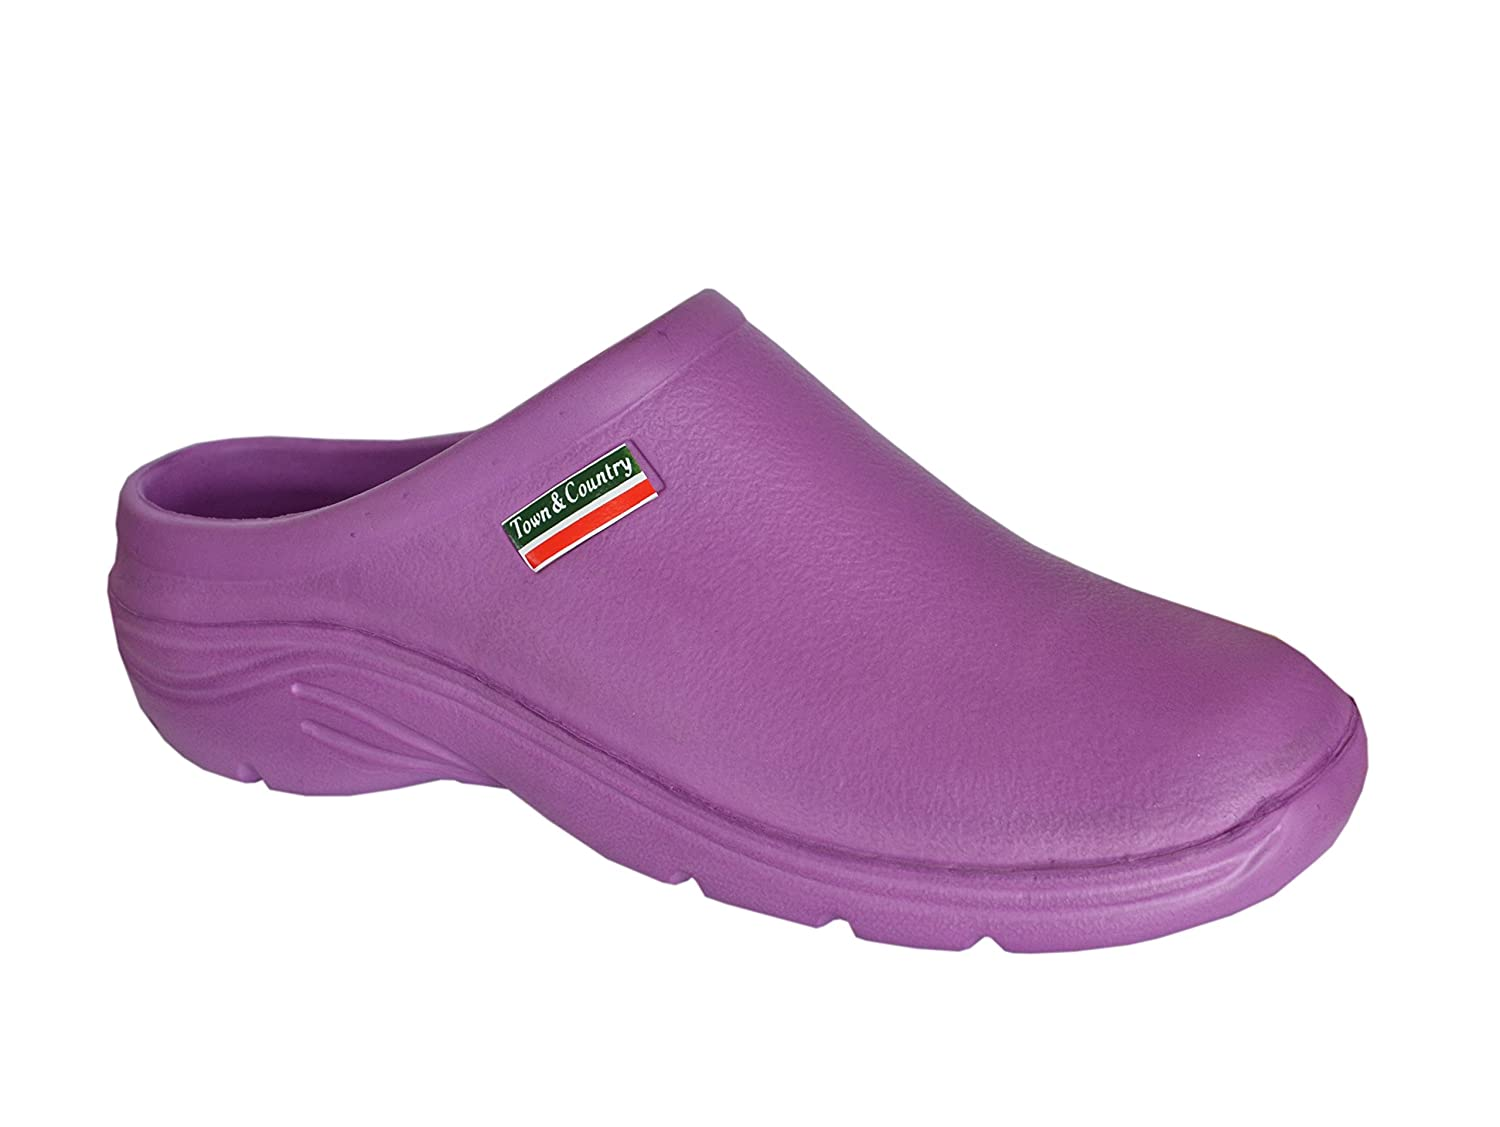 Womens Garden Clogs Slip On Lightweight Synthetic For Her